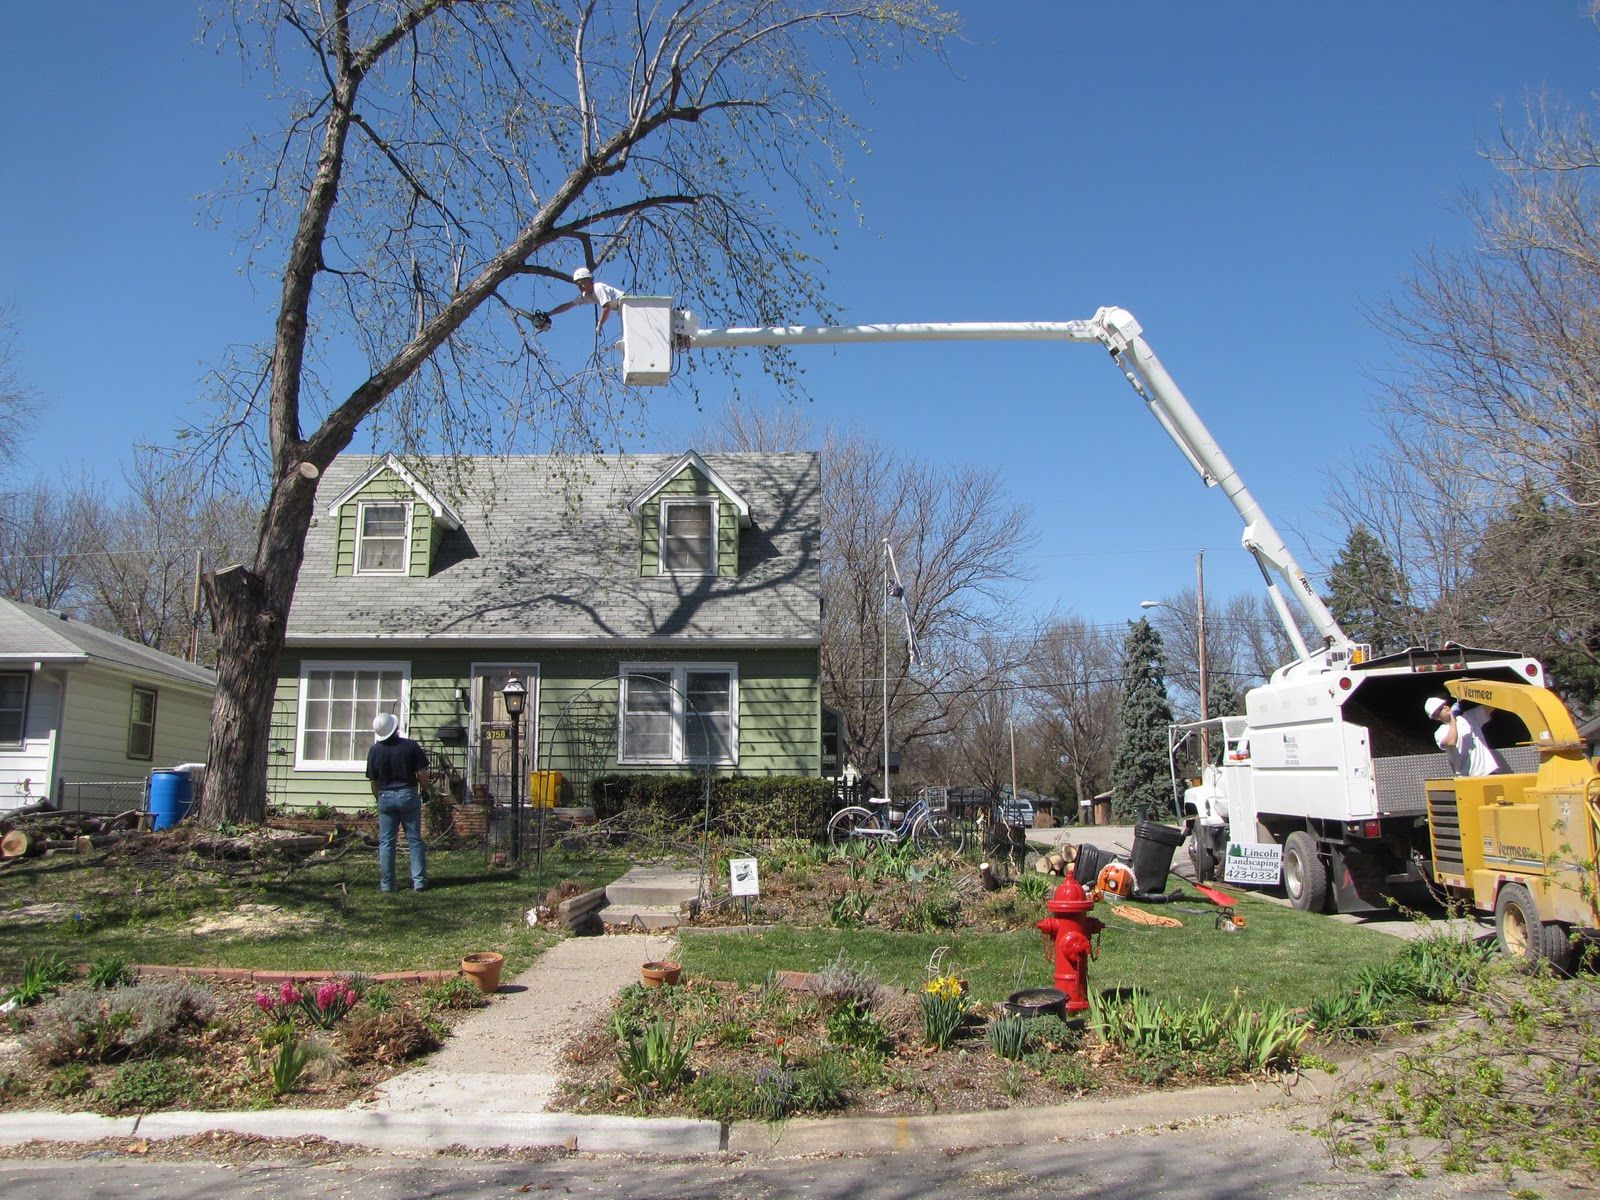 Silver Maple   Bad Trees   Tree Choices for the Yard